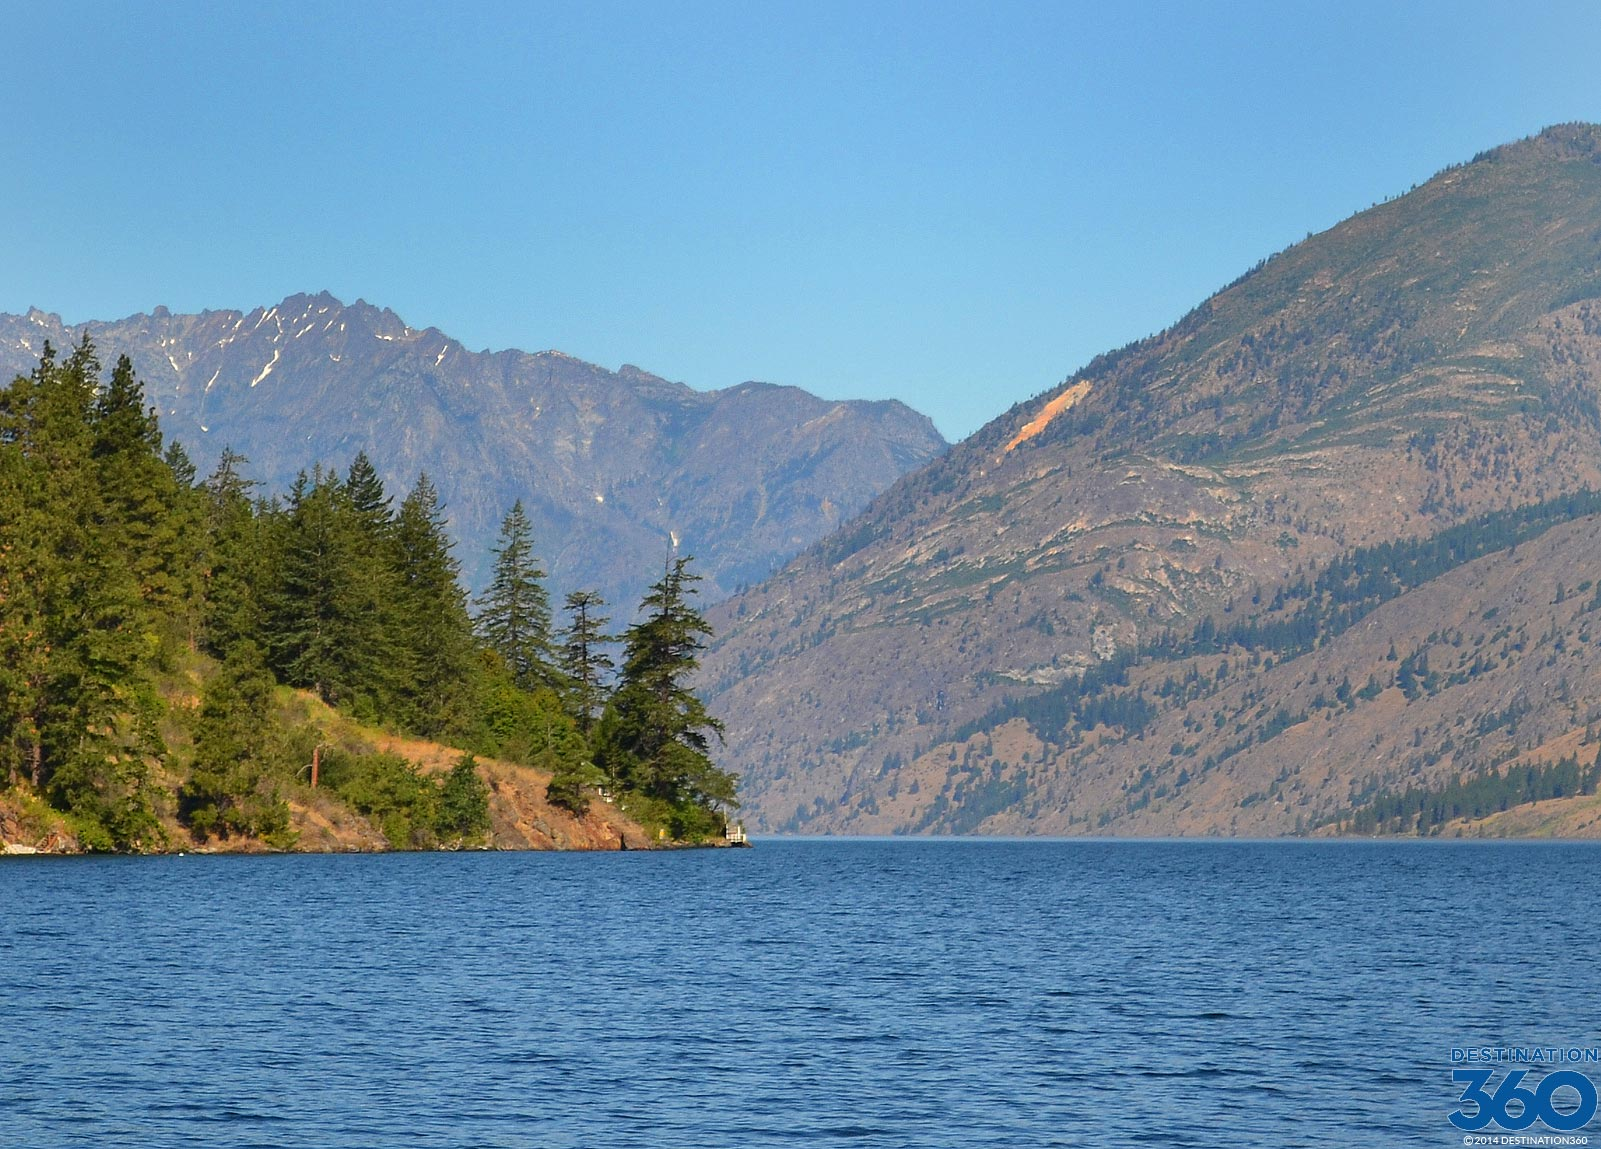 Lake Chelan Virtual Tour